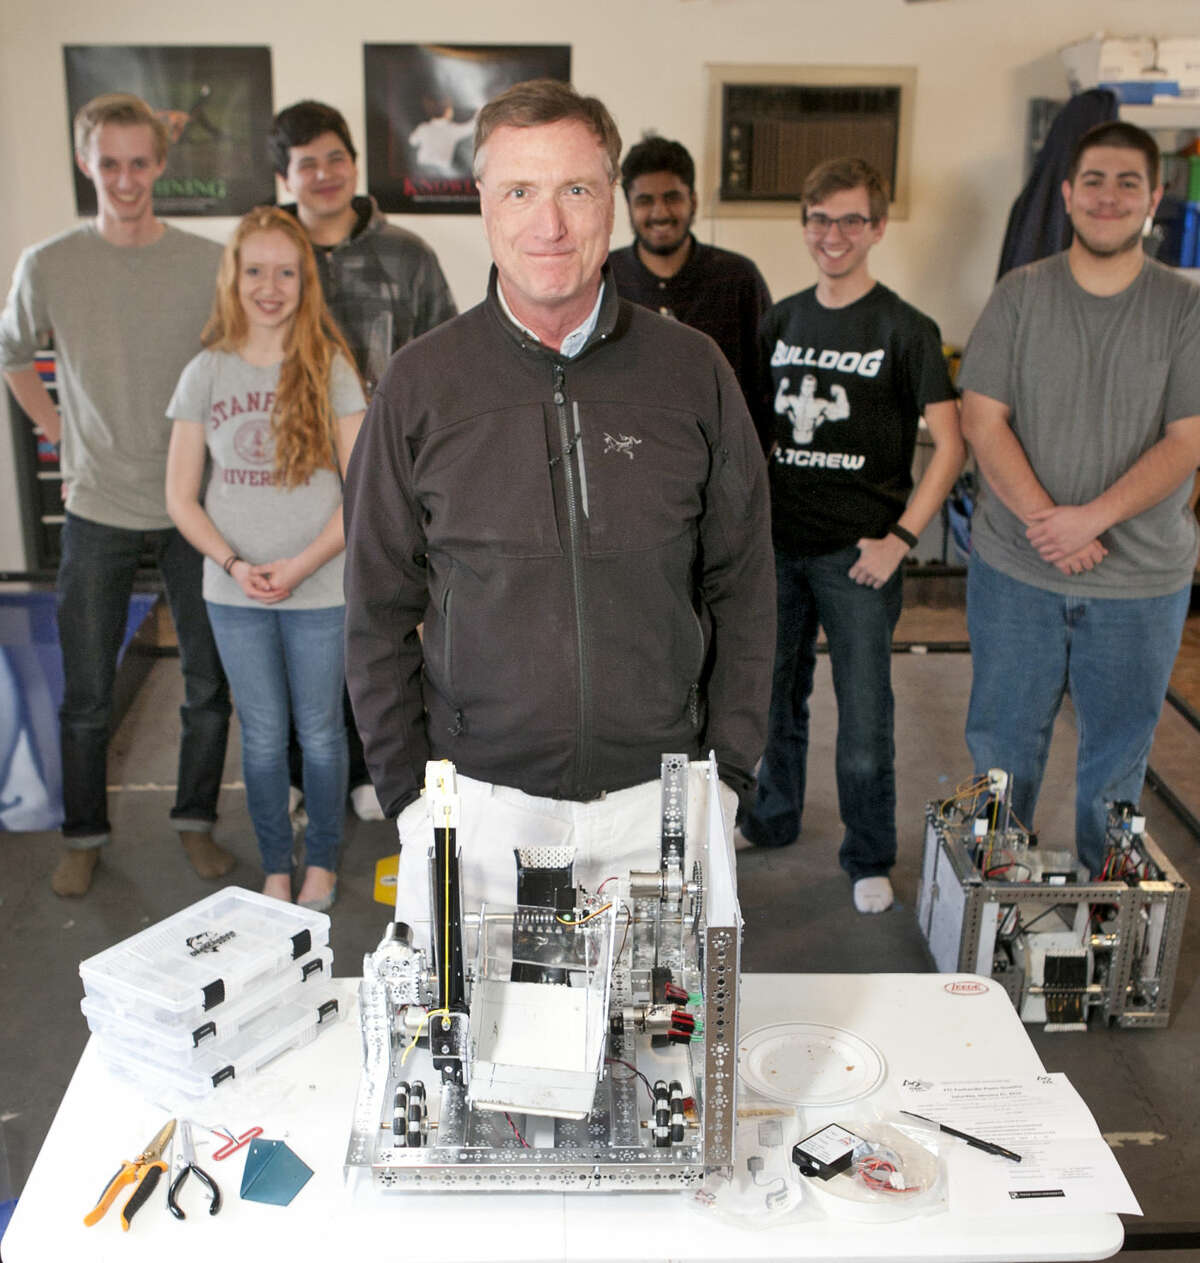 """""""I get to watch these kids grow before my eyes, as they learn machining, tool use, mechanical engineering and analytical skills. They develop a lot of self-reliance and self-confidence in robotics."""""""